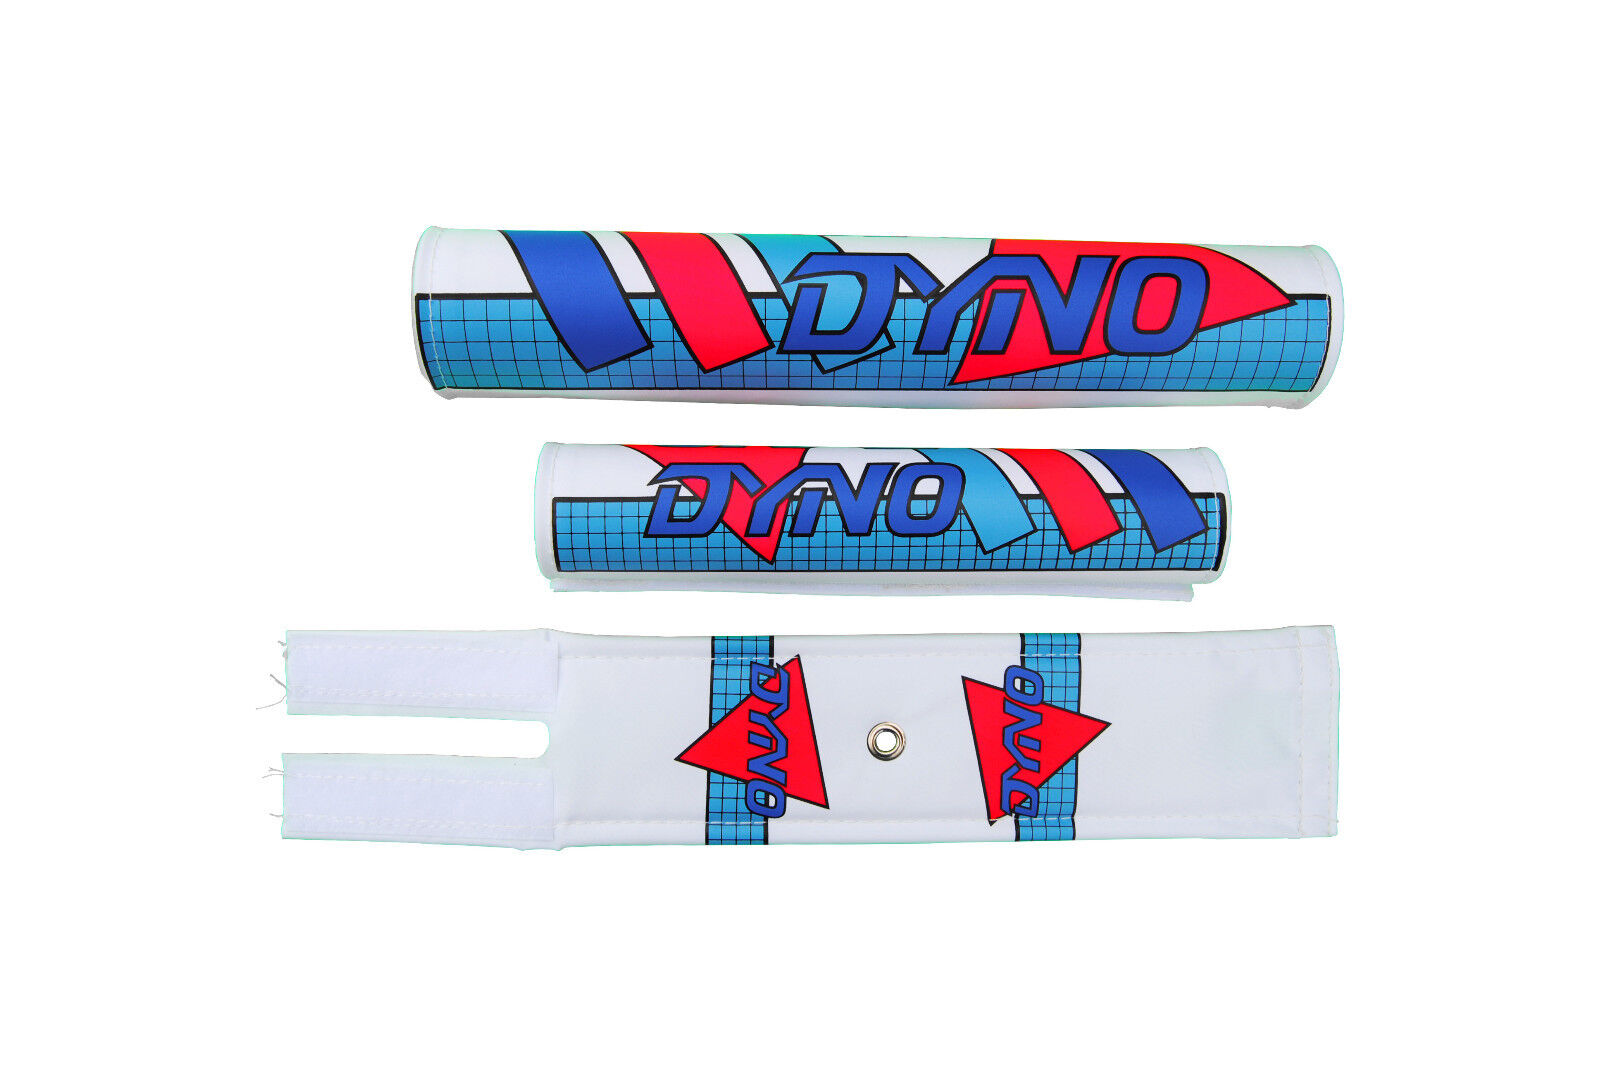 DYNO old school BMX padset pads - GRID - blueeE CYAN DAYGLO RED MADE IN USA